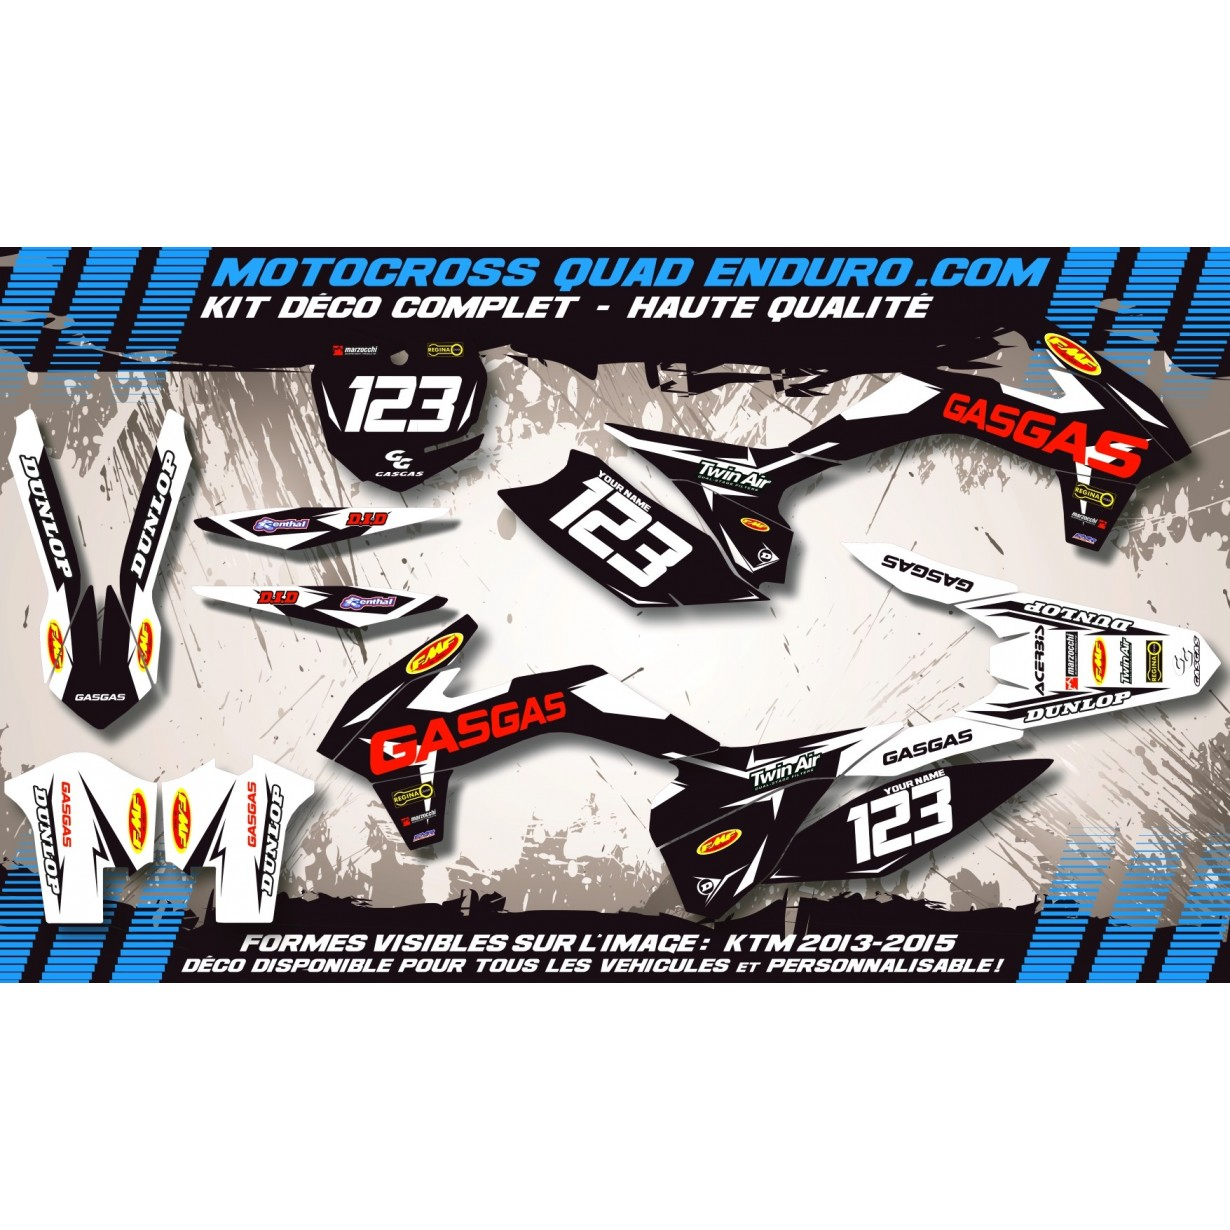 KIT DÉCO Perso EC 03-06 Factory Black Edition MA10HB